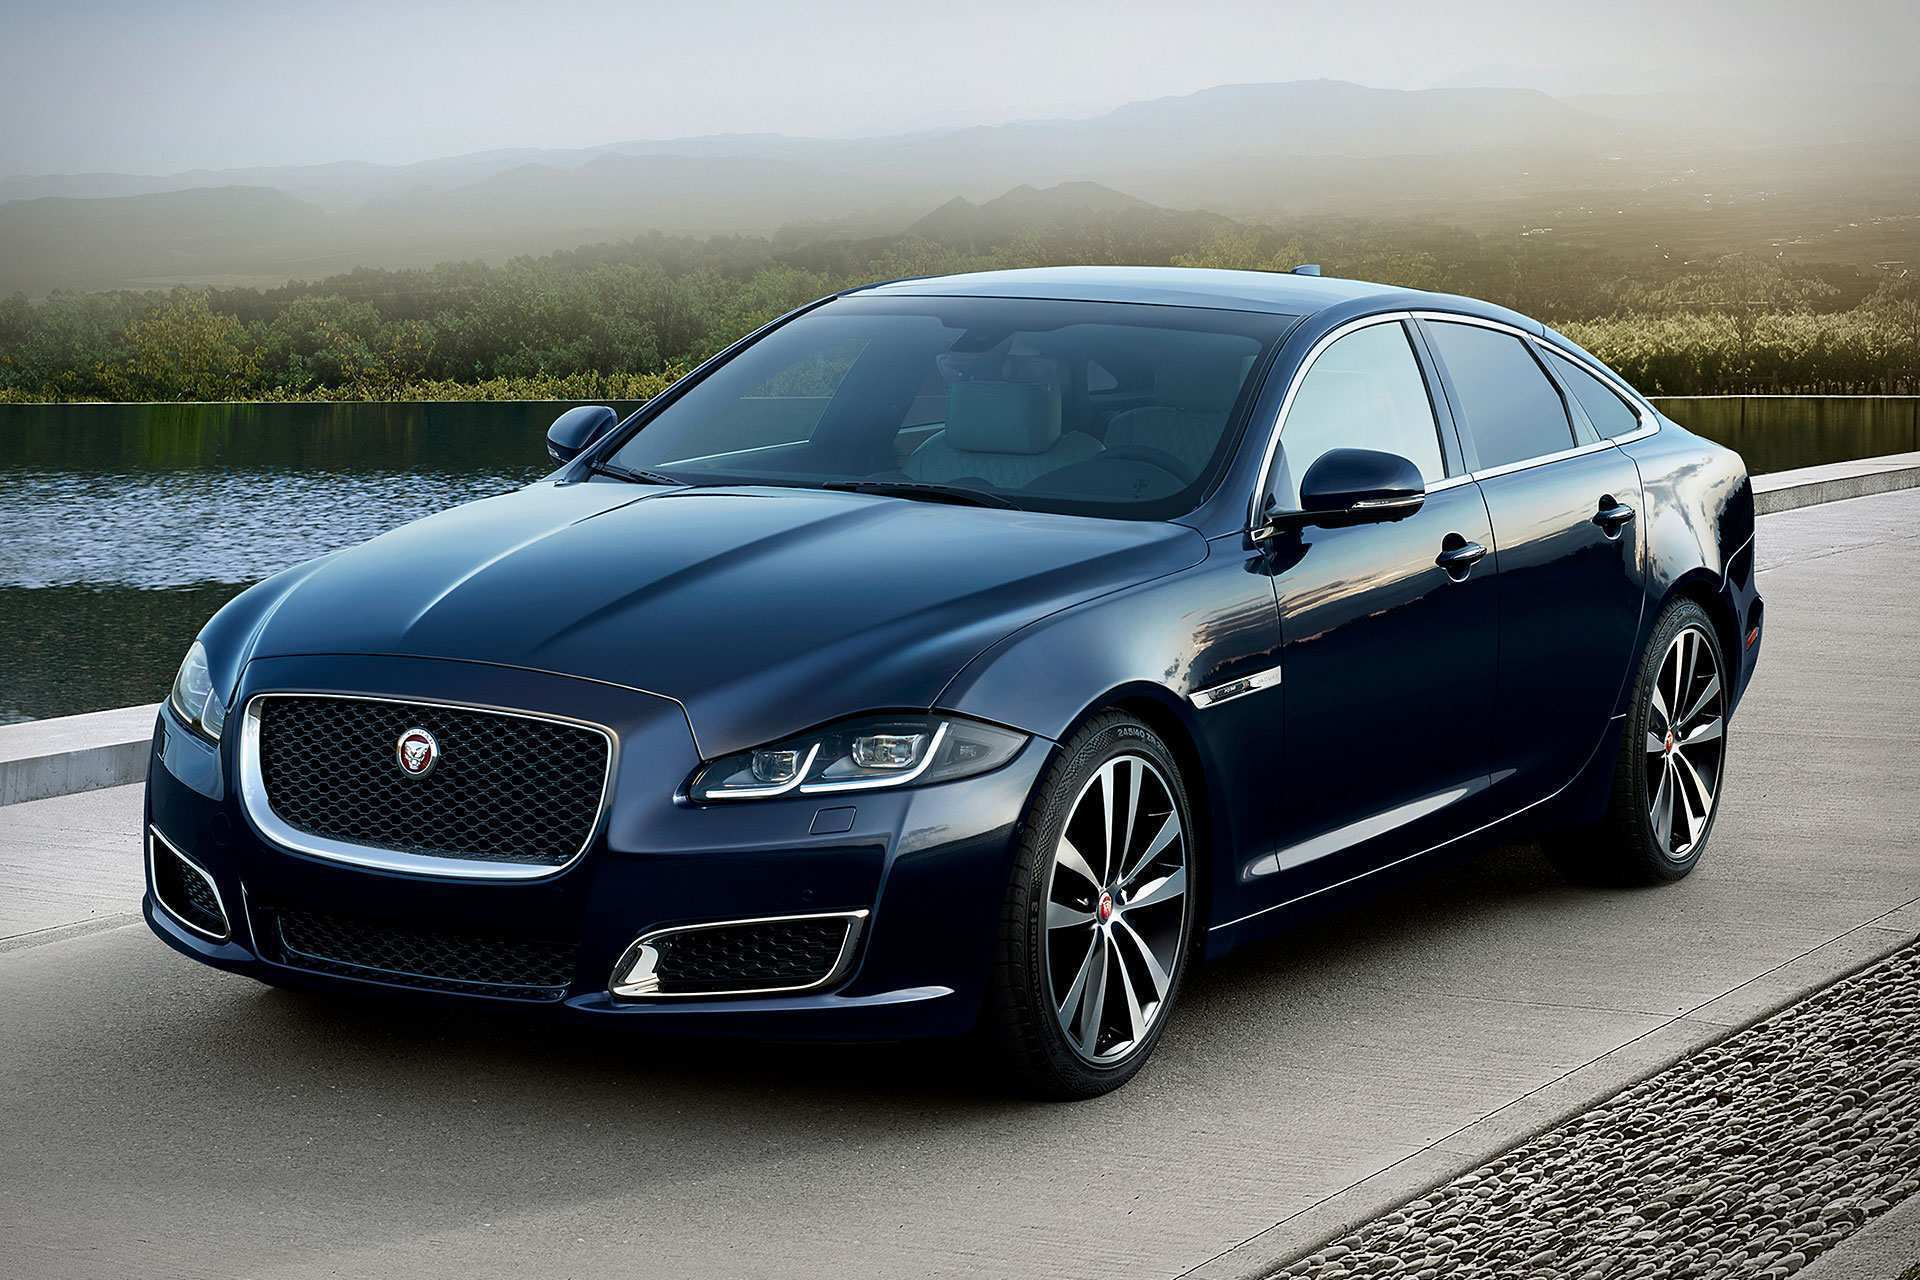 51 Concept of 2019 Jaguar Sedan Review by 2019 Jaguar Sedan